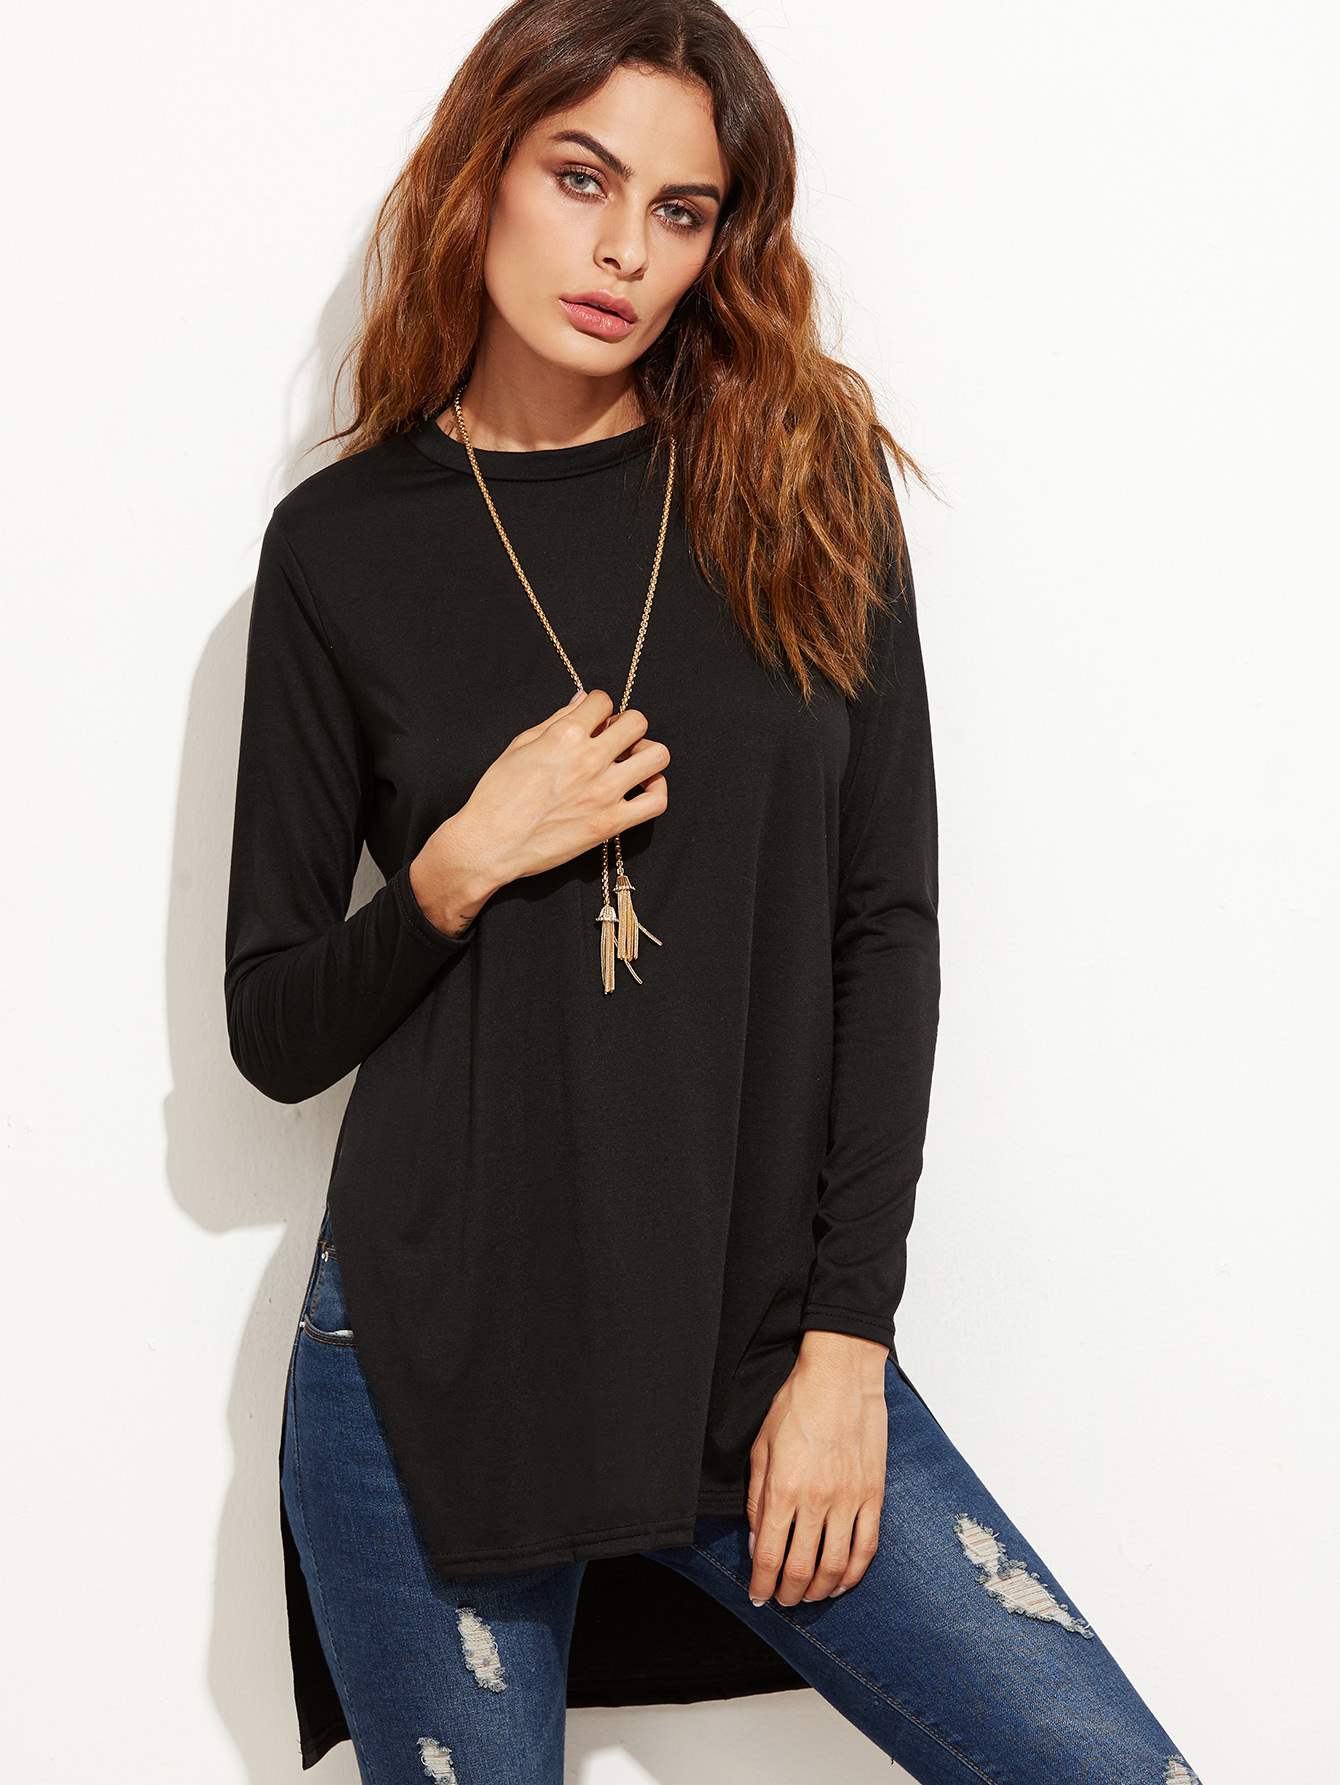 Black Slit Side High Low T-shirtBlack Slit Side High Low T-shirt<br><br>color: Black<br>size: L,M,S,XL